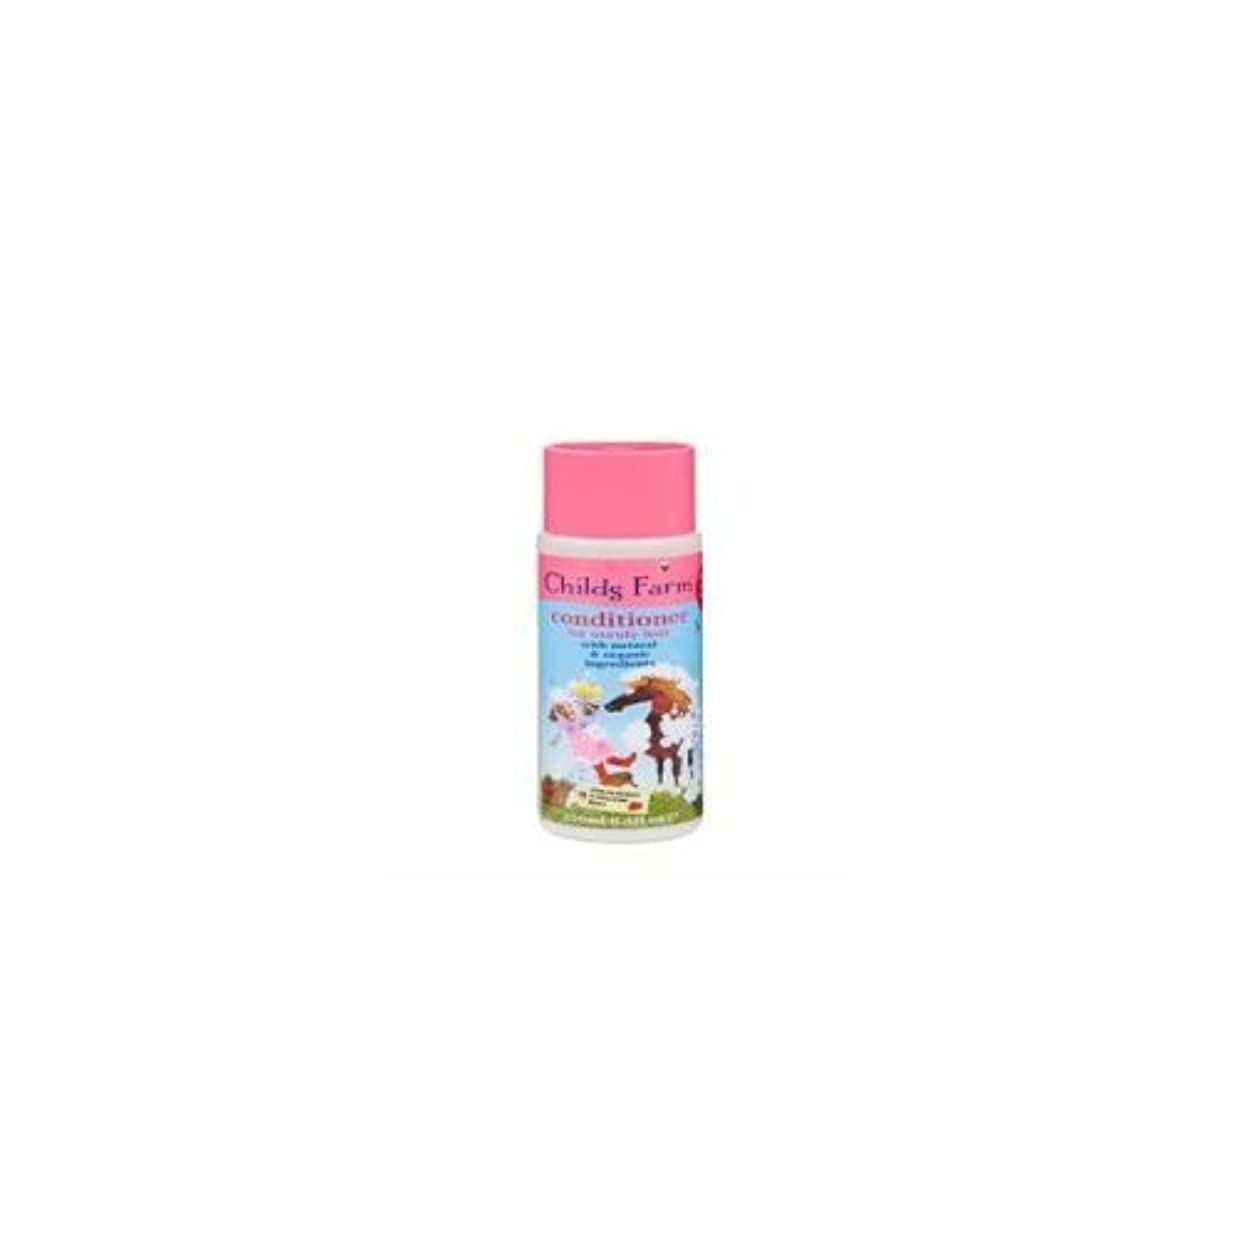 洞察力のあるふざけたハウスConditioner for Unruly Hair (250ml) x 2 Pack Deal Saver by Childs Farm [並行輸入品]